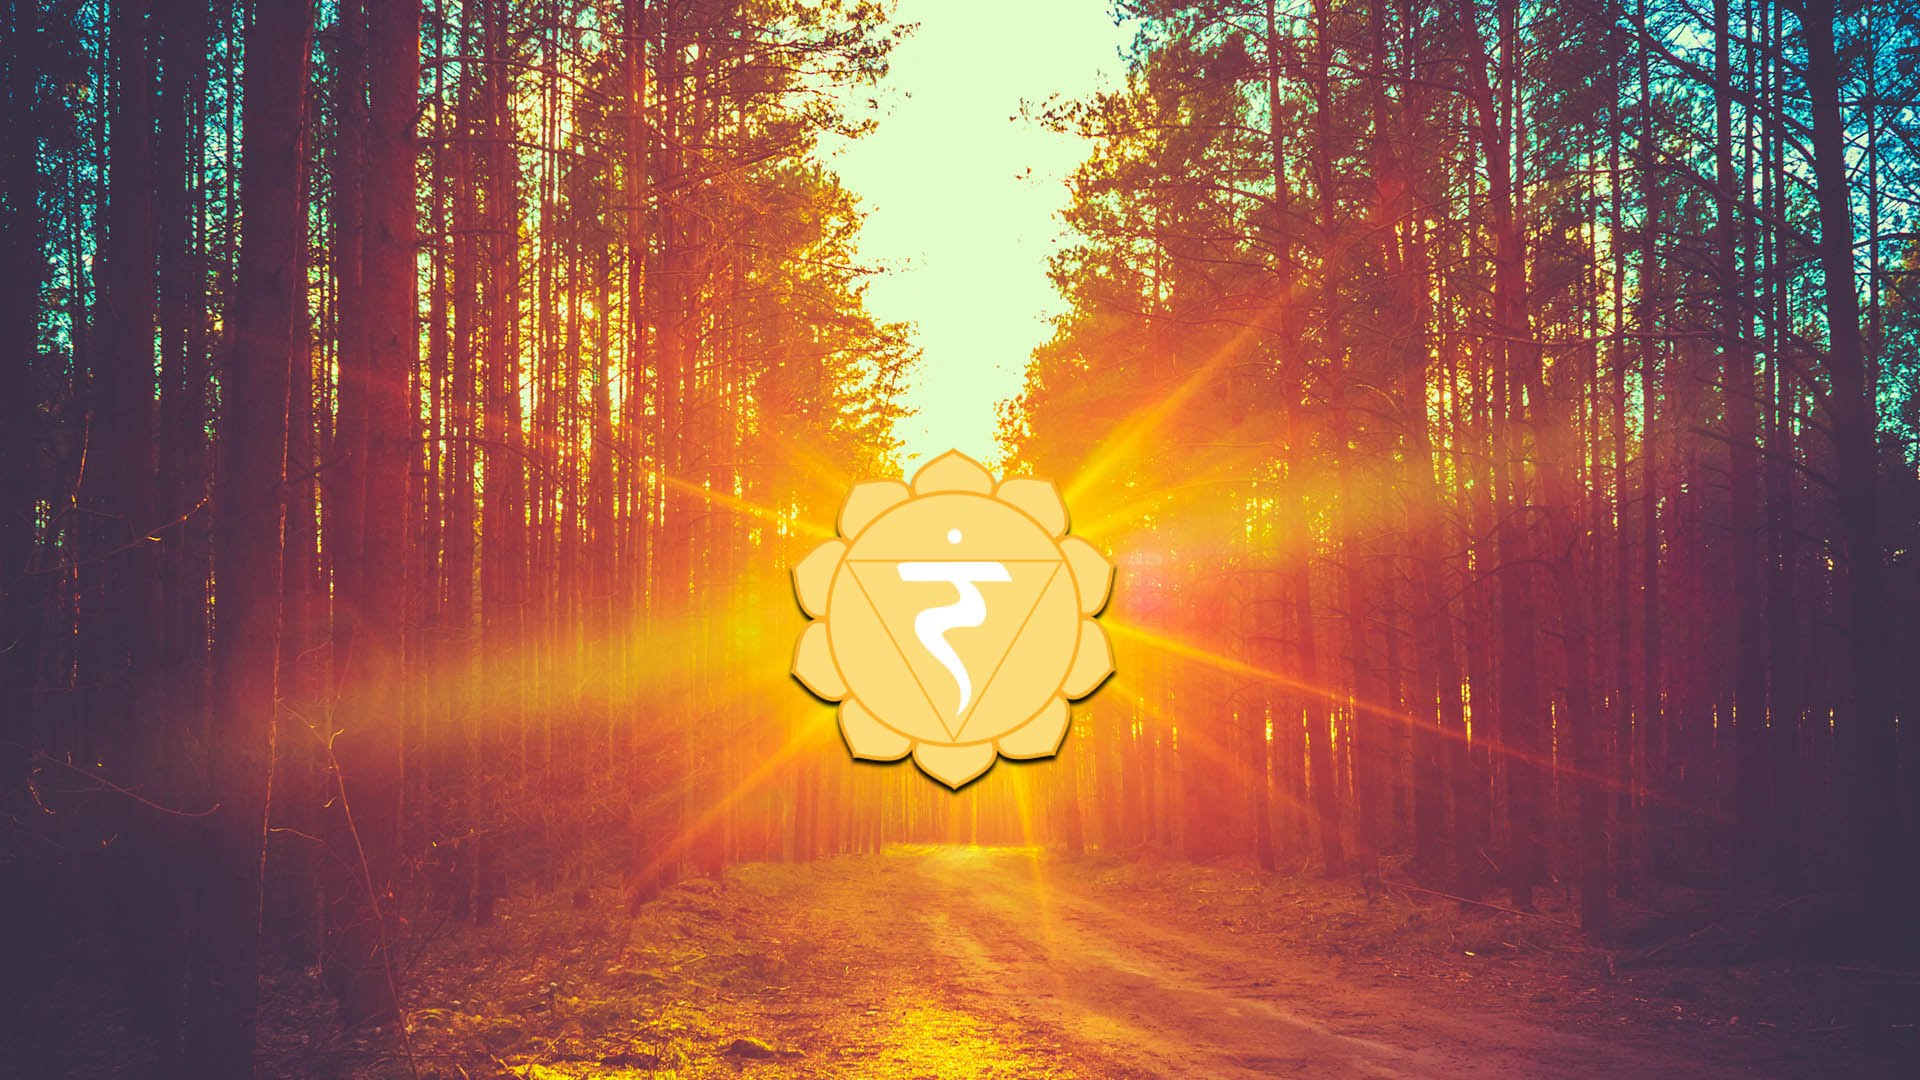 What is the purpose of meditation: Mindfulness or Enlightenment? 7